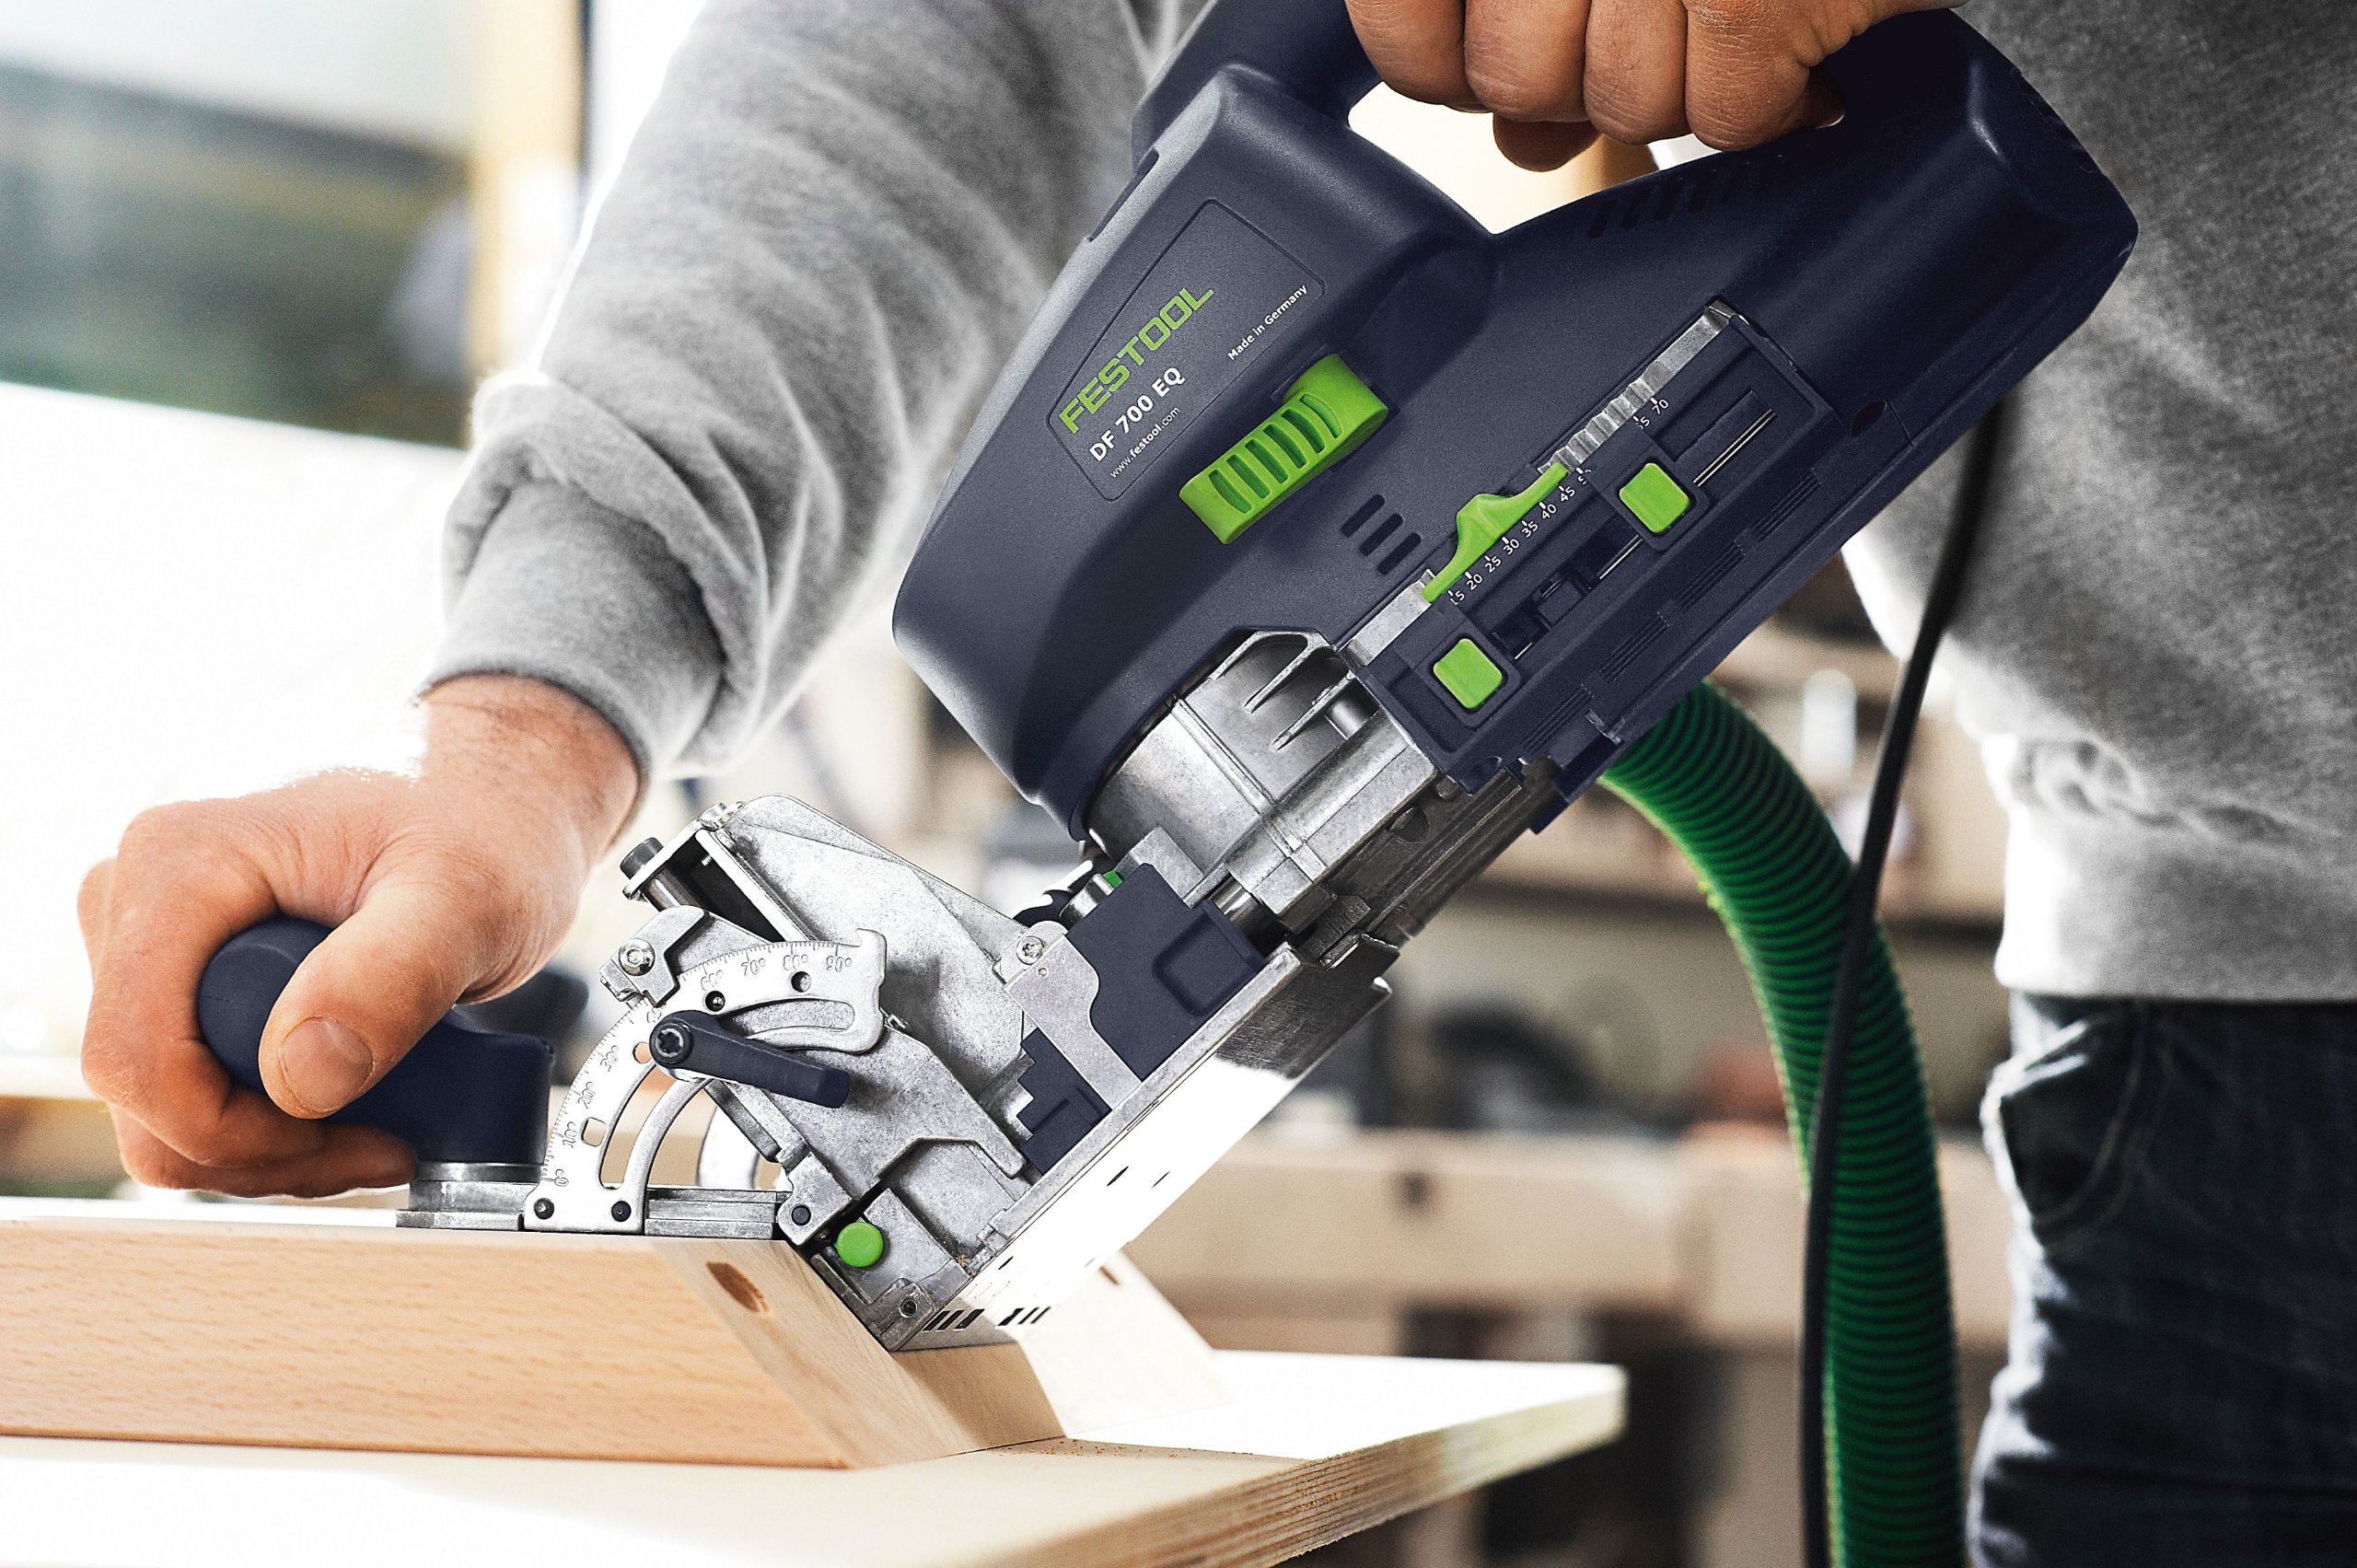 Festool 574447 XL DF 700 Domino Joiner Set by Festool (Image #4)